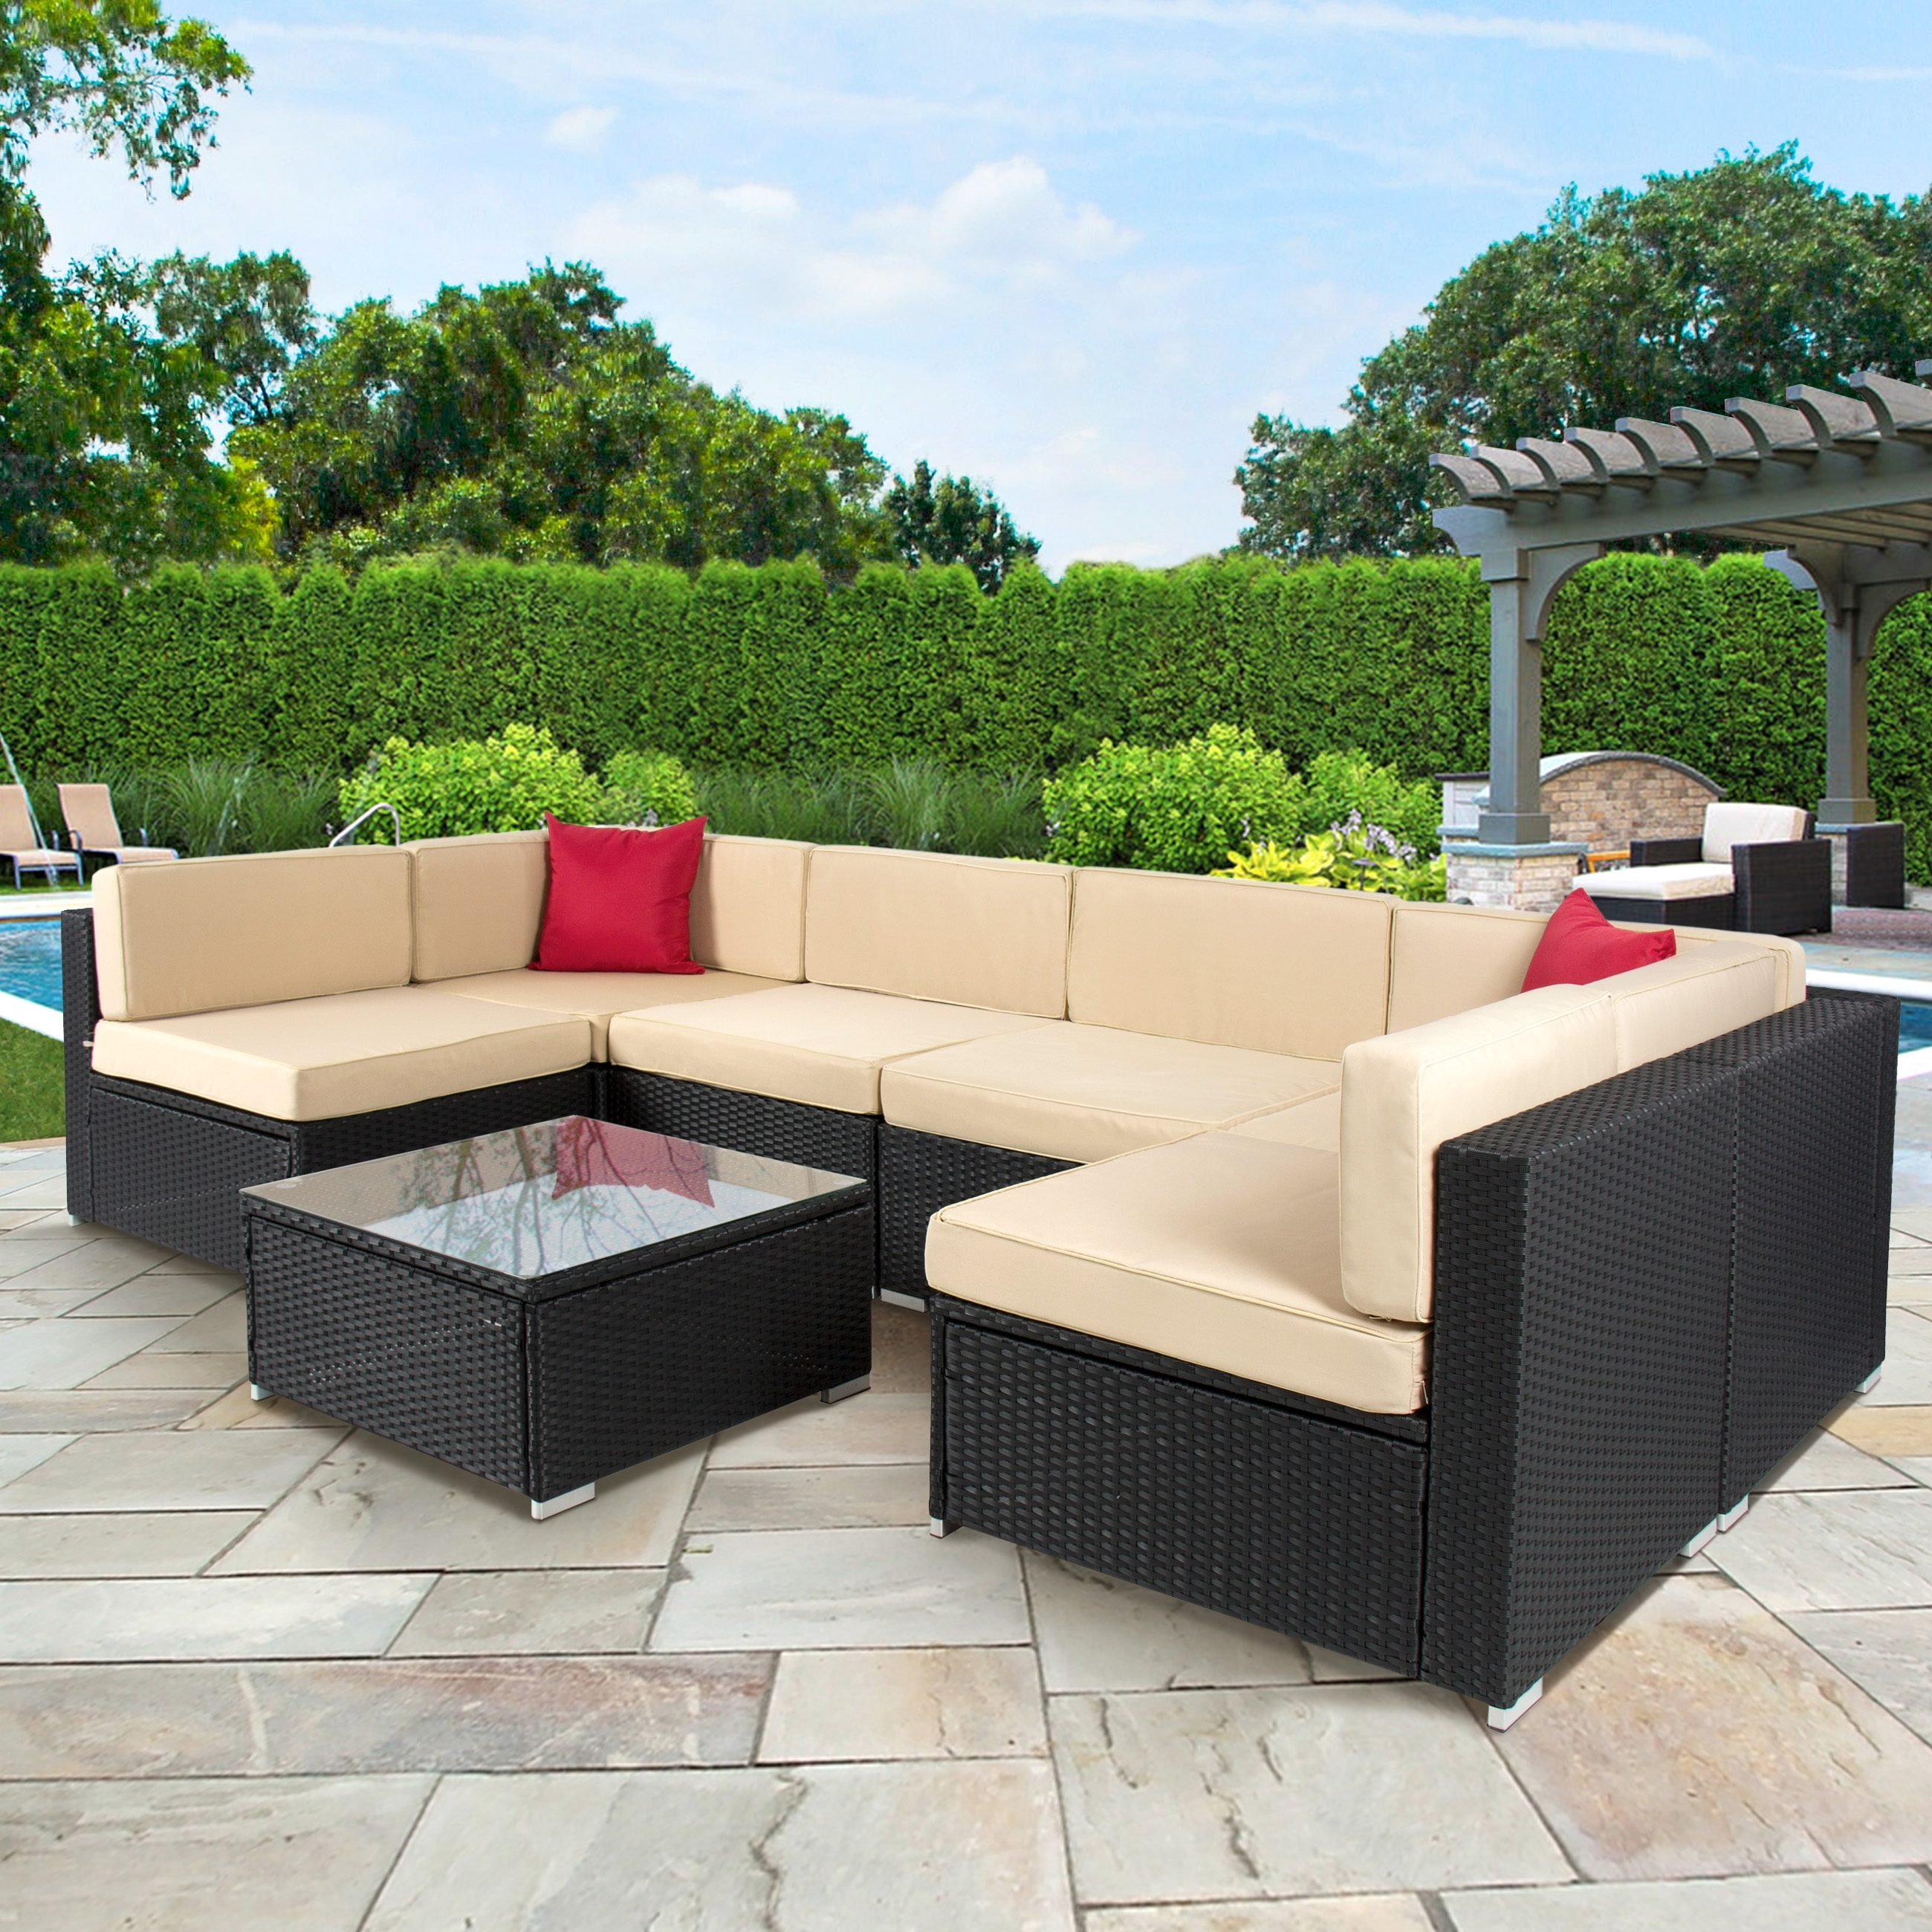 Recent Jewel Patio Umbrellas Pertaining To How To Choose The Right Types Of Outdoor Patio Furniture? – Blogbeen (View 15 of 20)